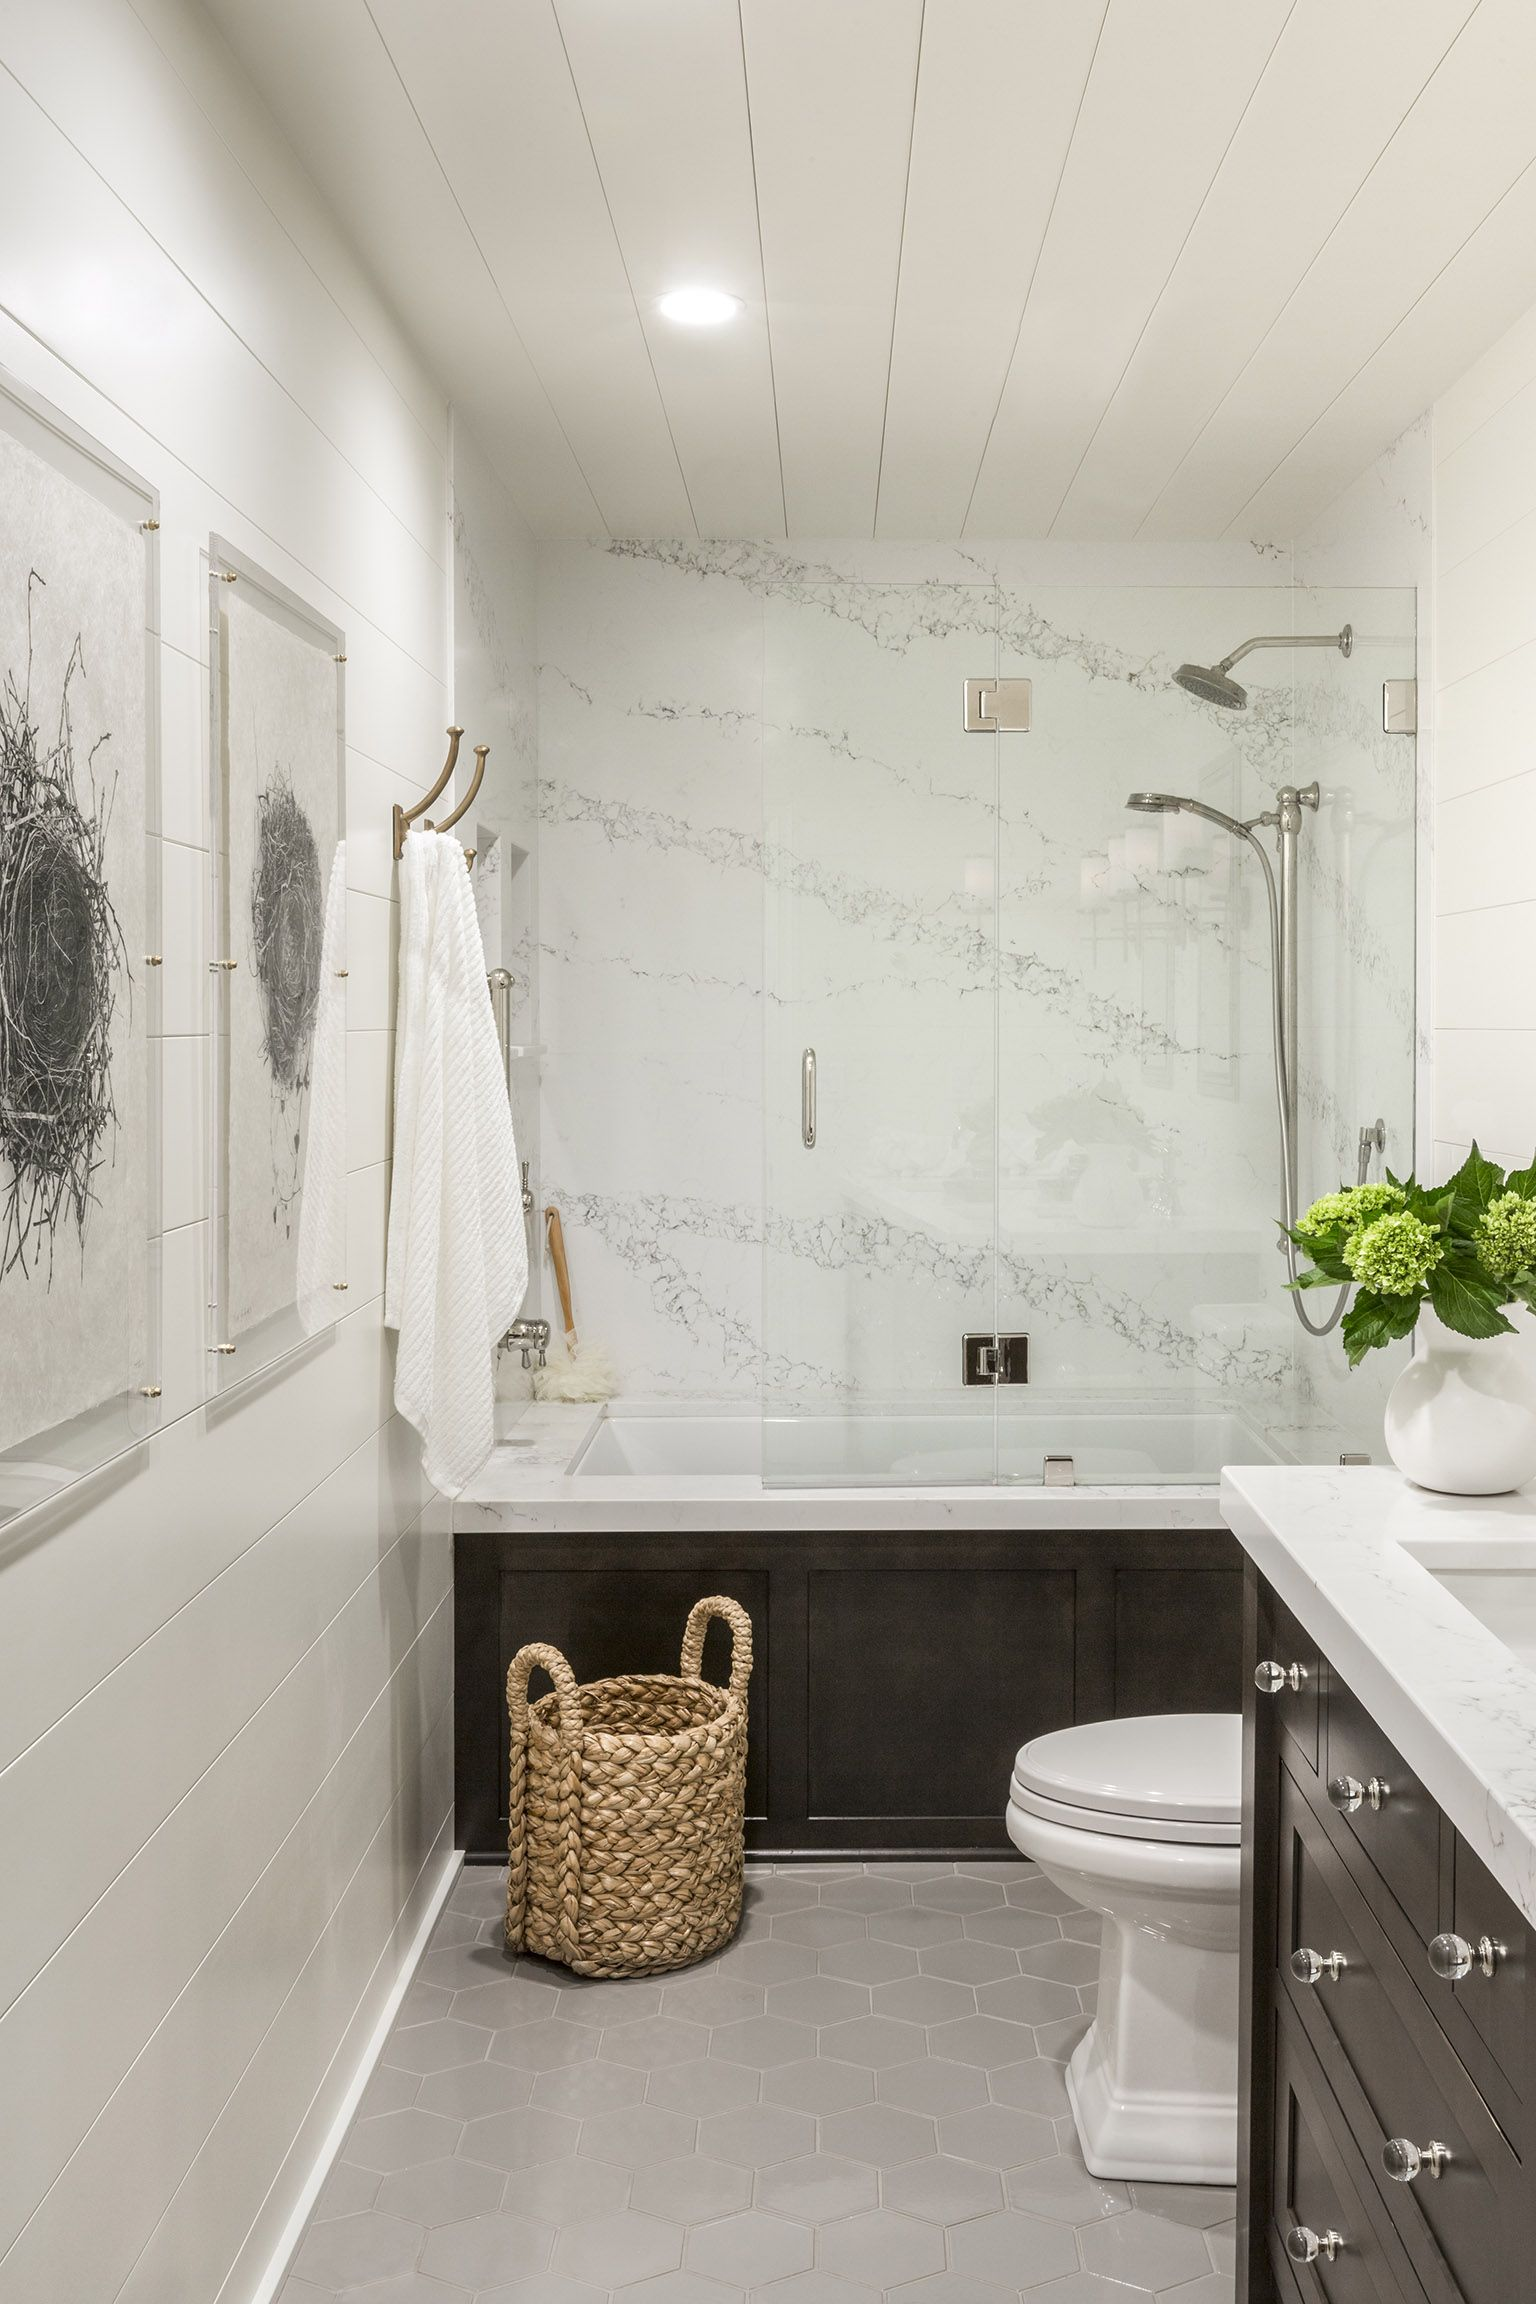 Hall Bathroom Remodel By R. Cartwright Design